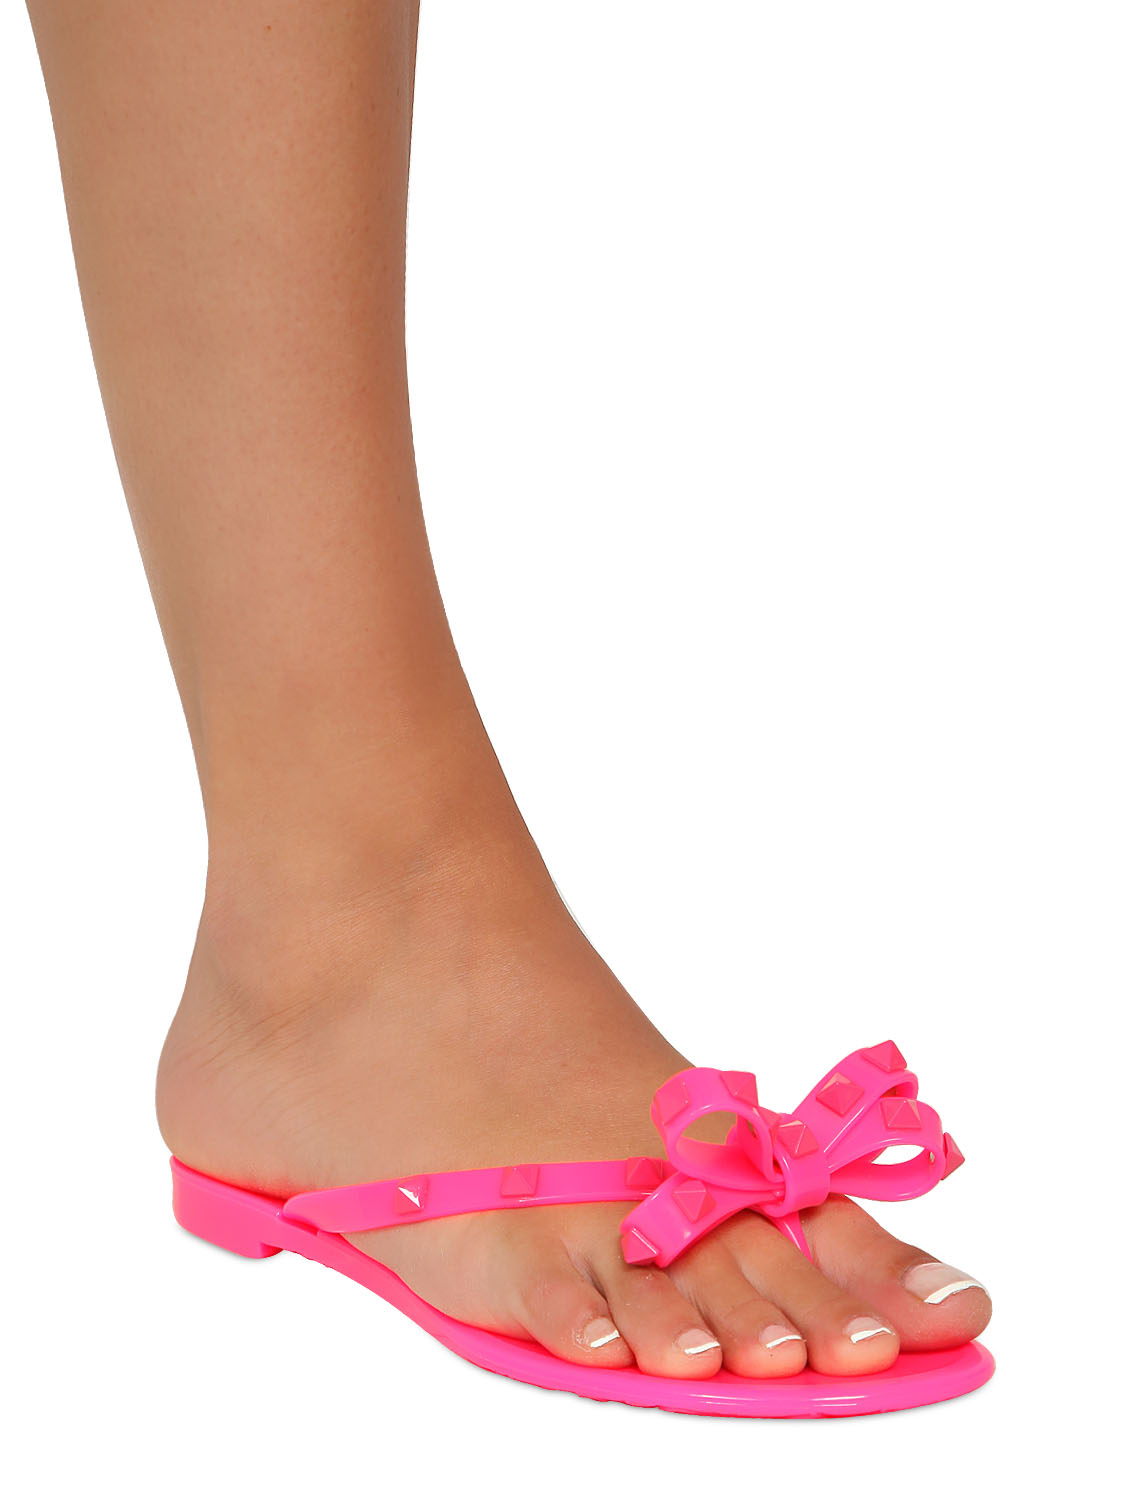 Valentino Rubber Studded Flip Flops In Pink Neon Fuchsia -7597